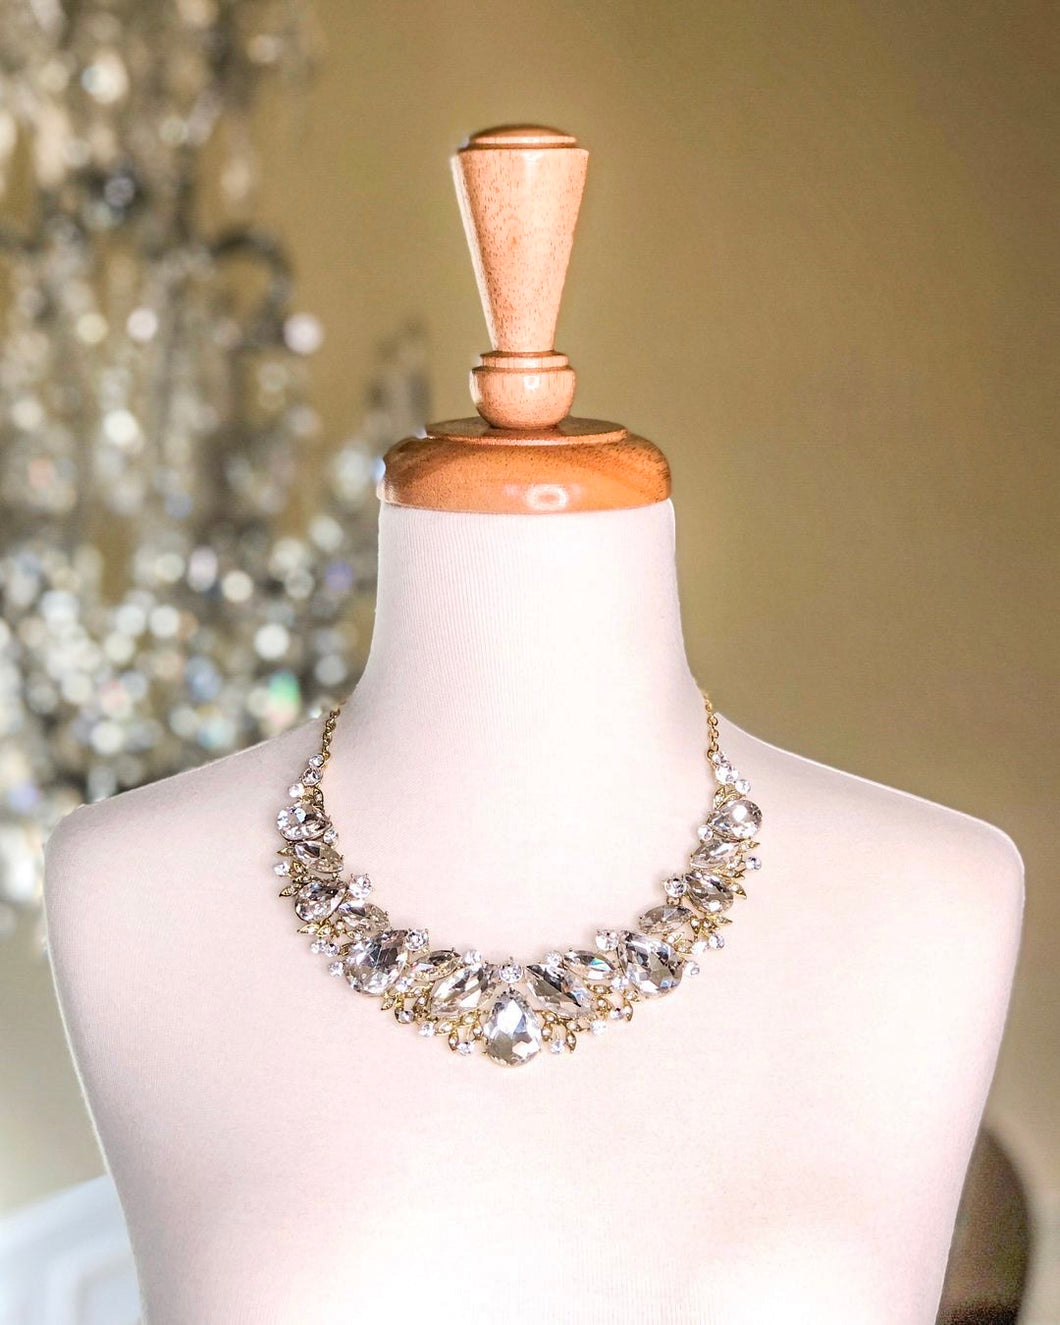 Tiara Necklace